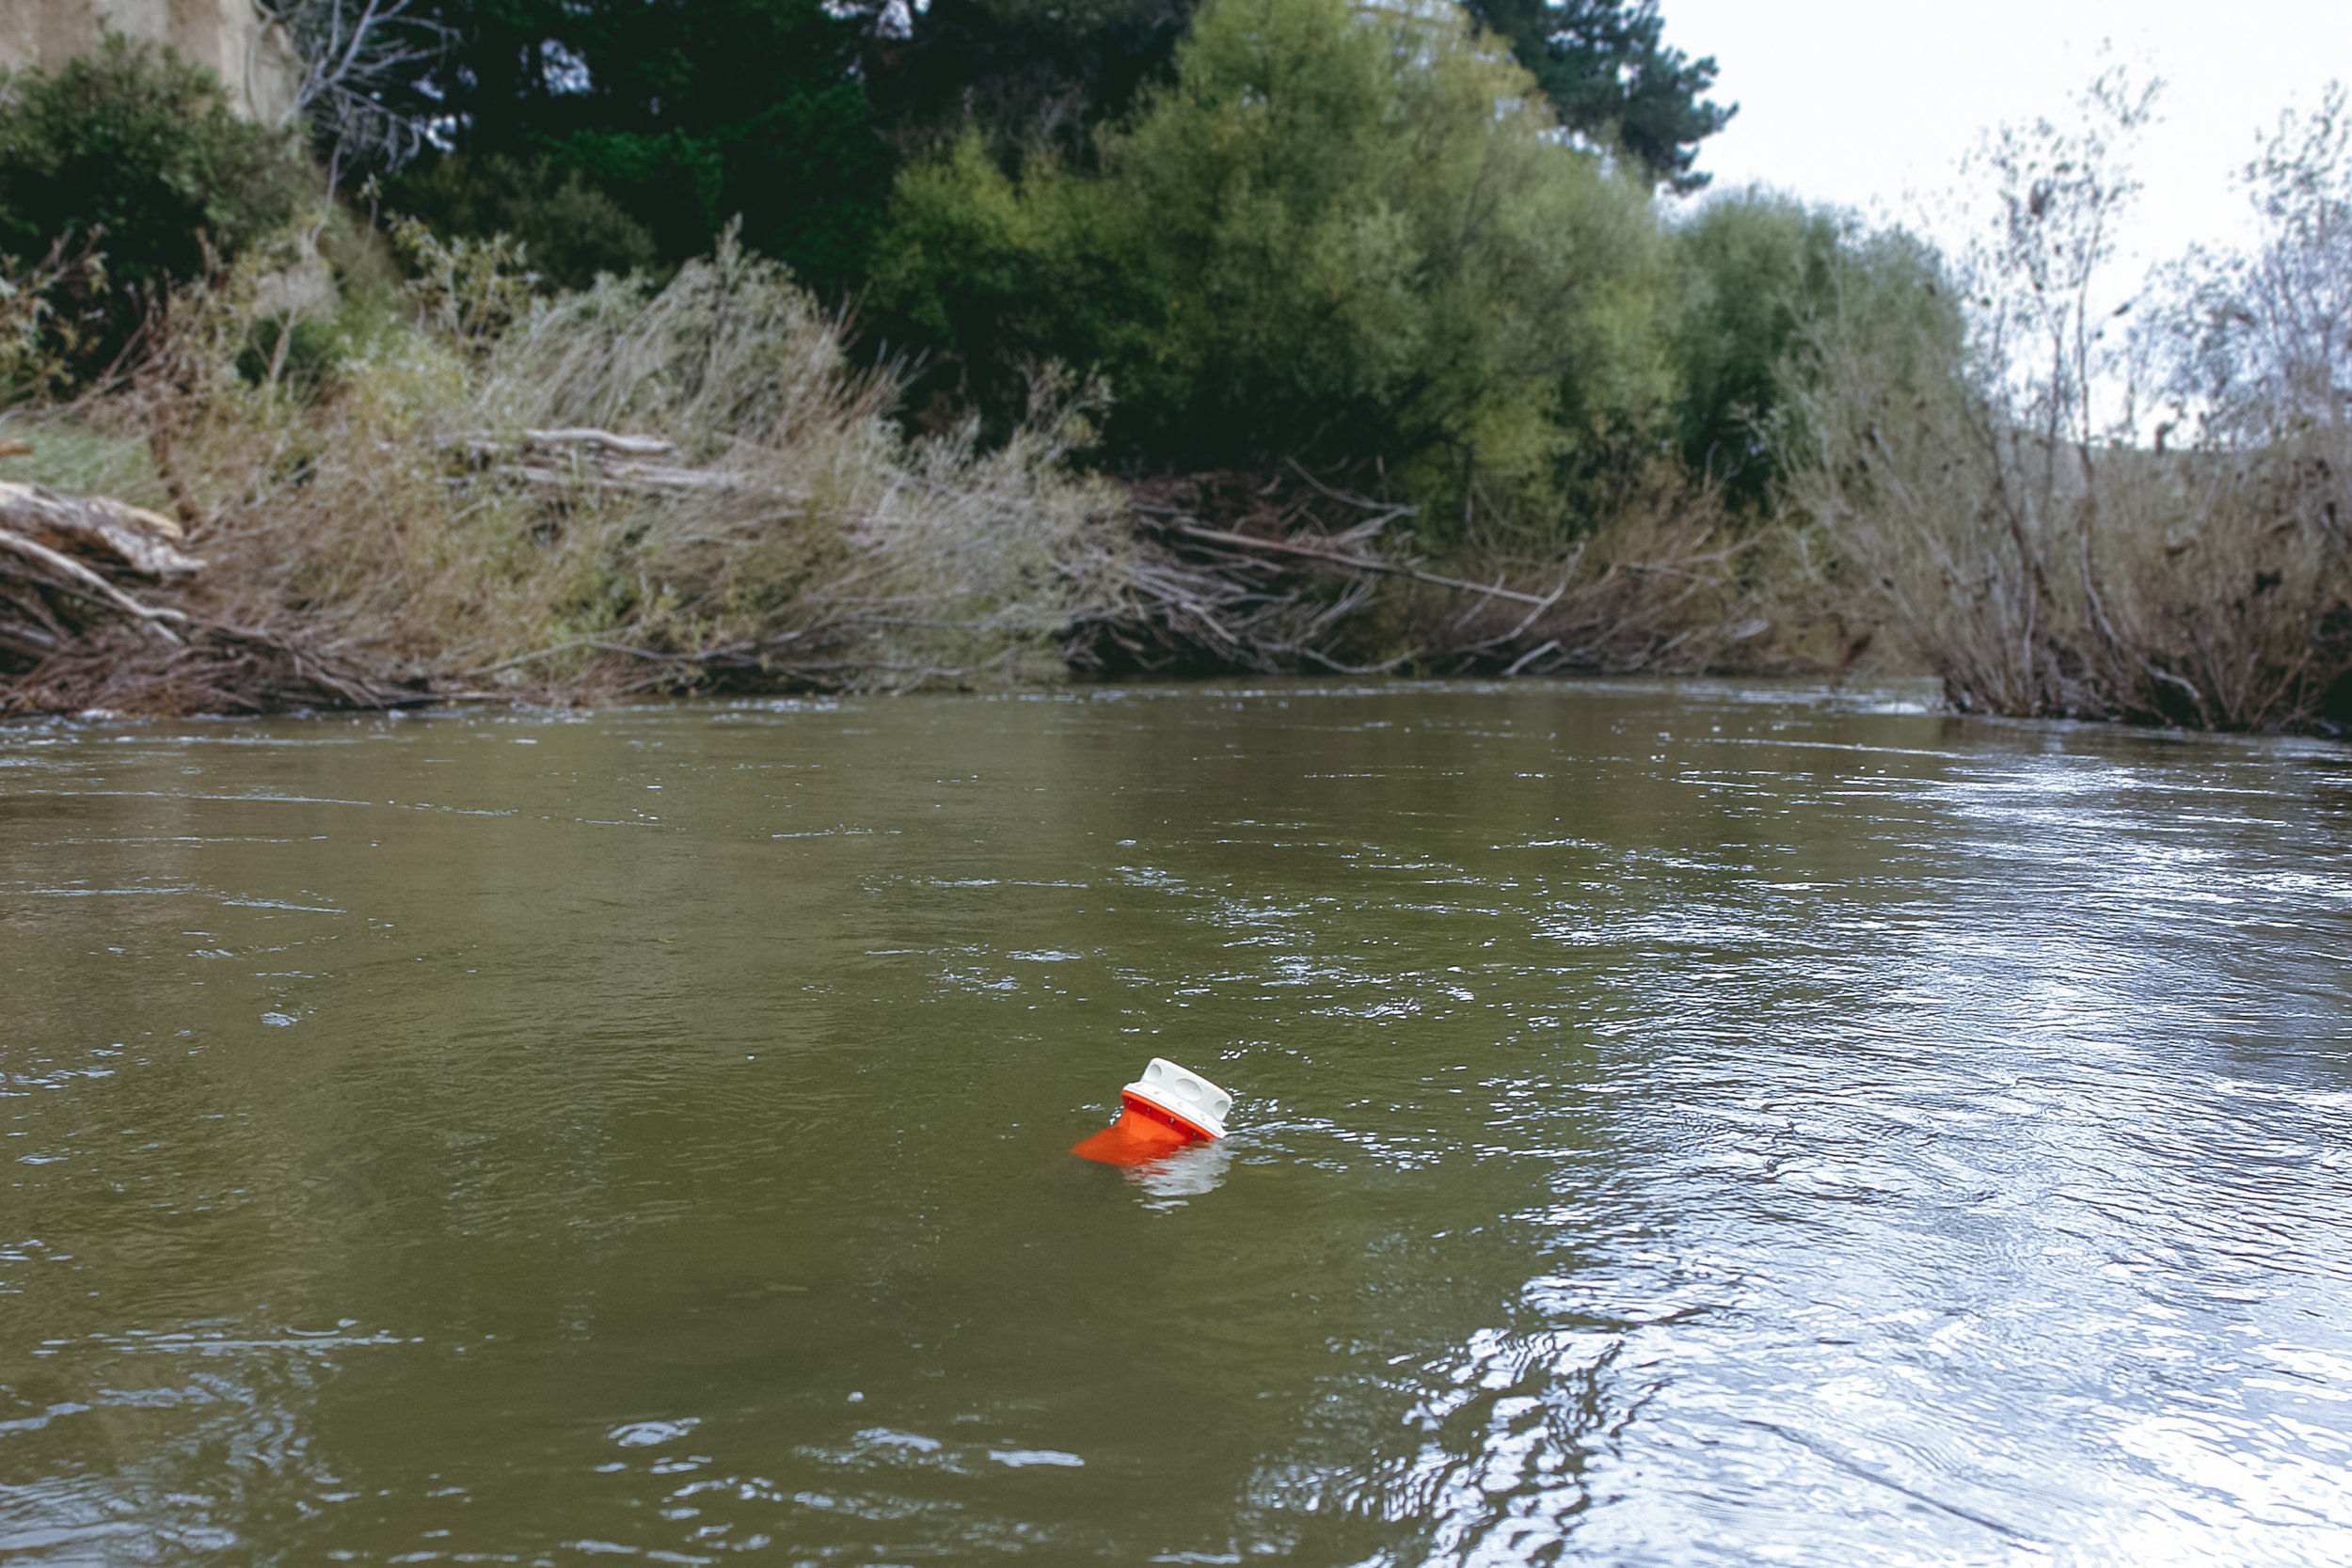 The RiverWatch gathering water quality data in the Pahaoa River, Martinborough